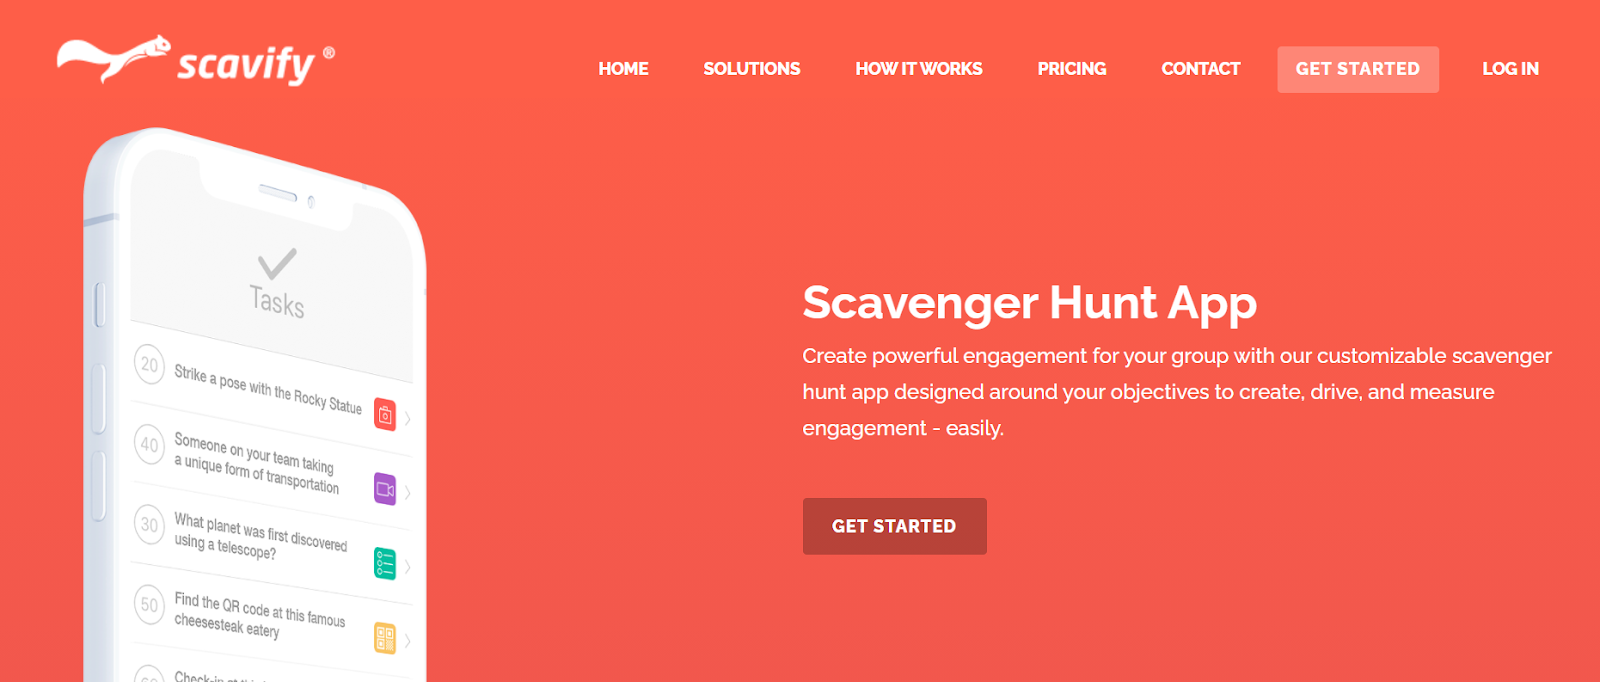 host a virtual scavenger hunt for a corporate team-building activity